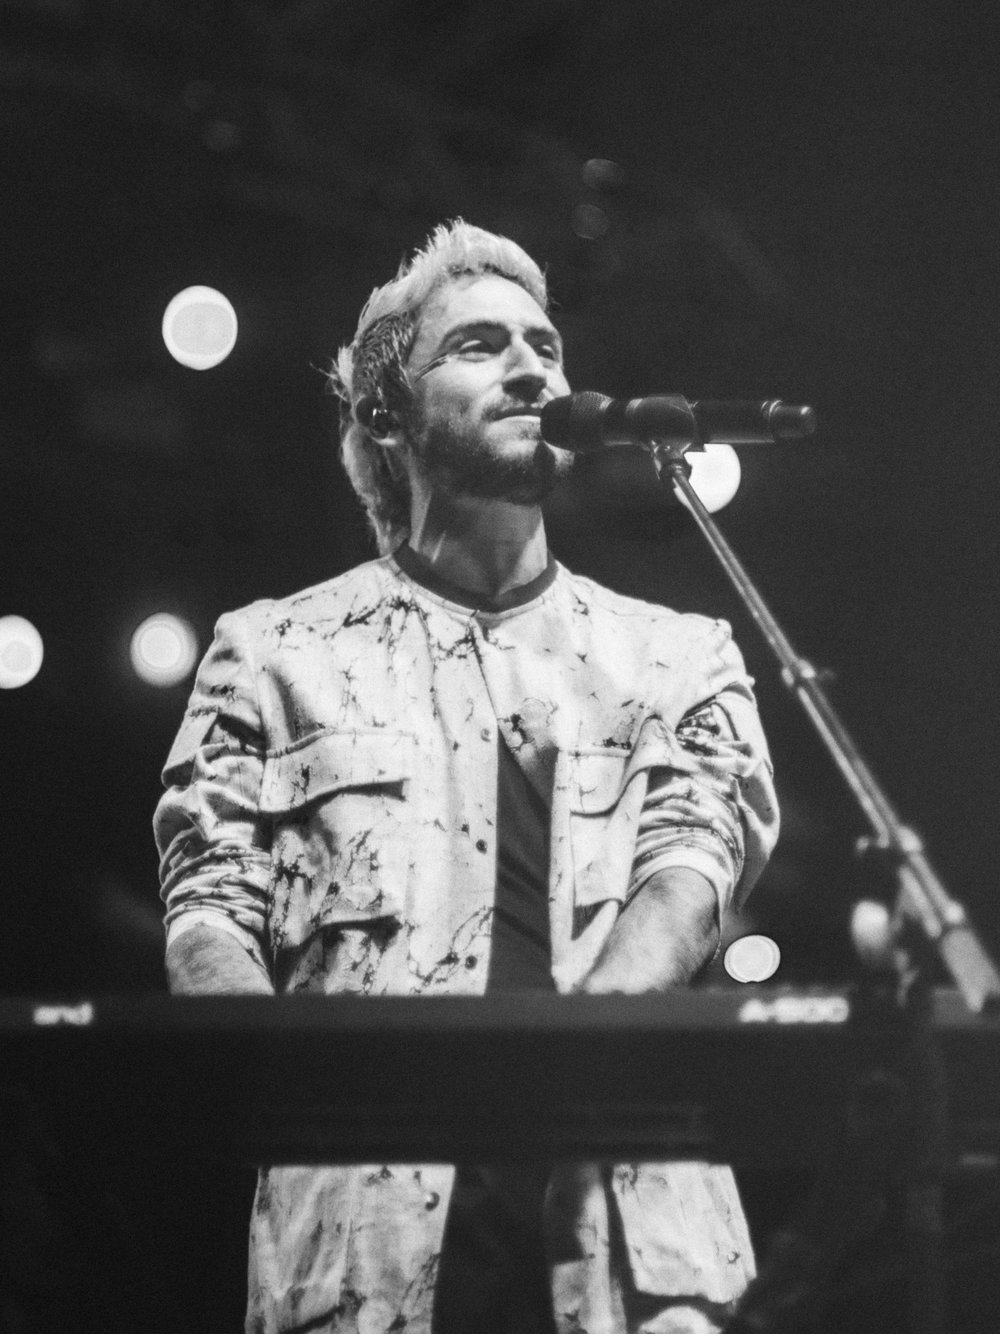 181020_WalkTheMoon_B7031308.jpg